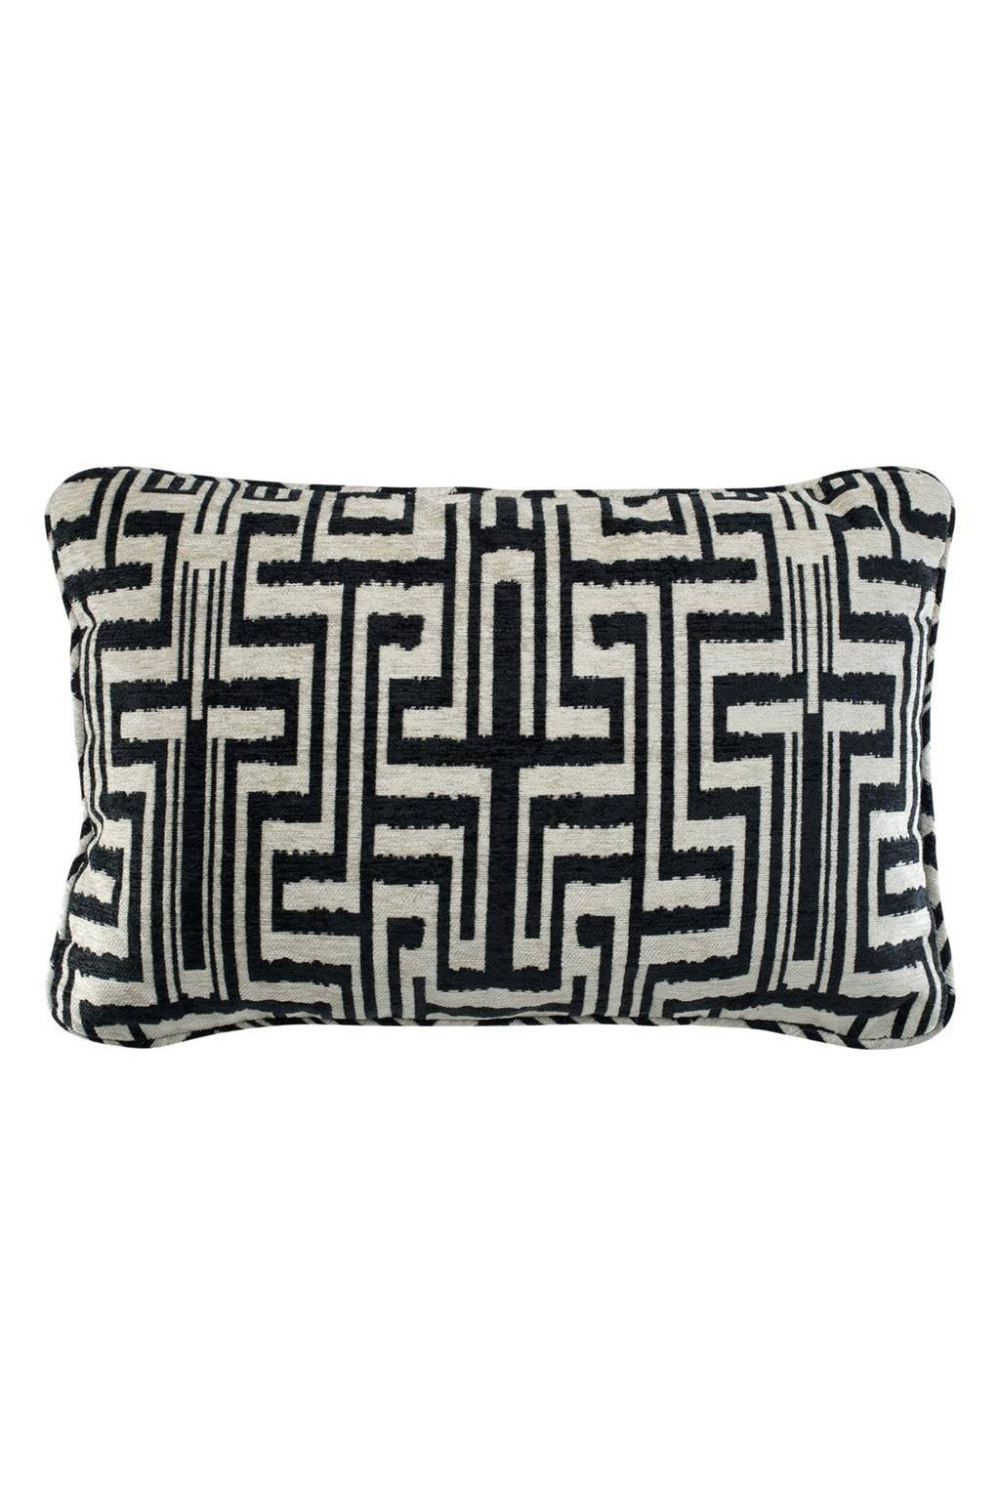 Square Geometric Throw Pillow | Eichholtz Ozbek | OROA